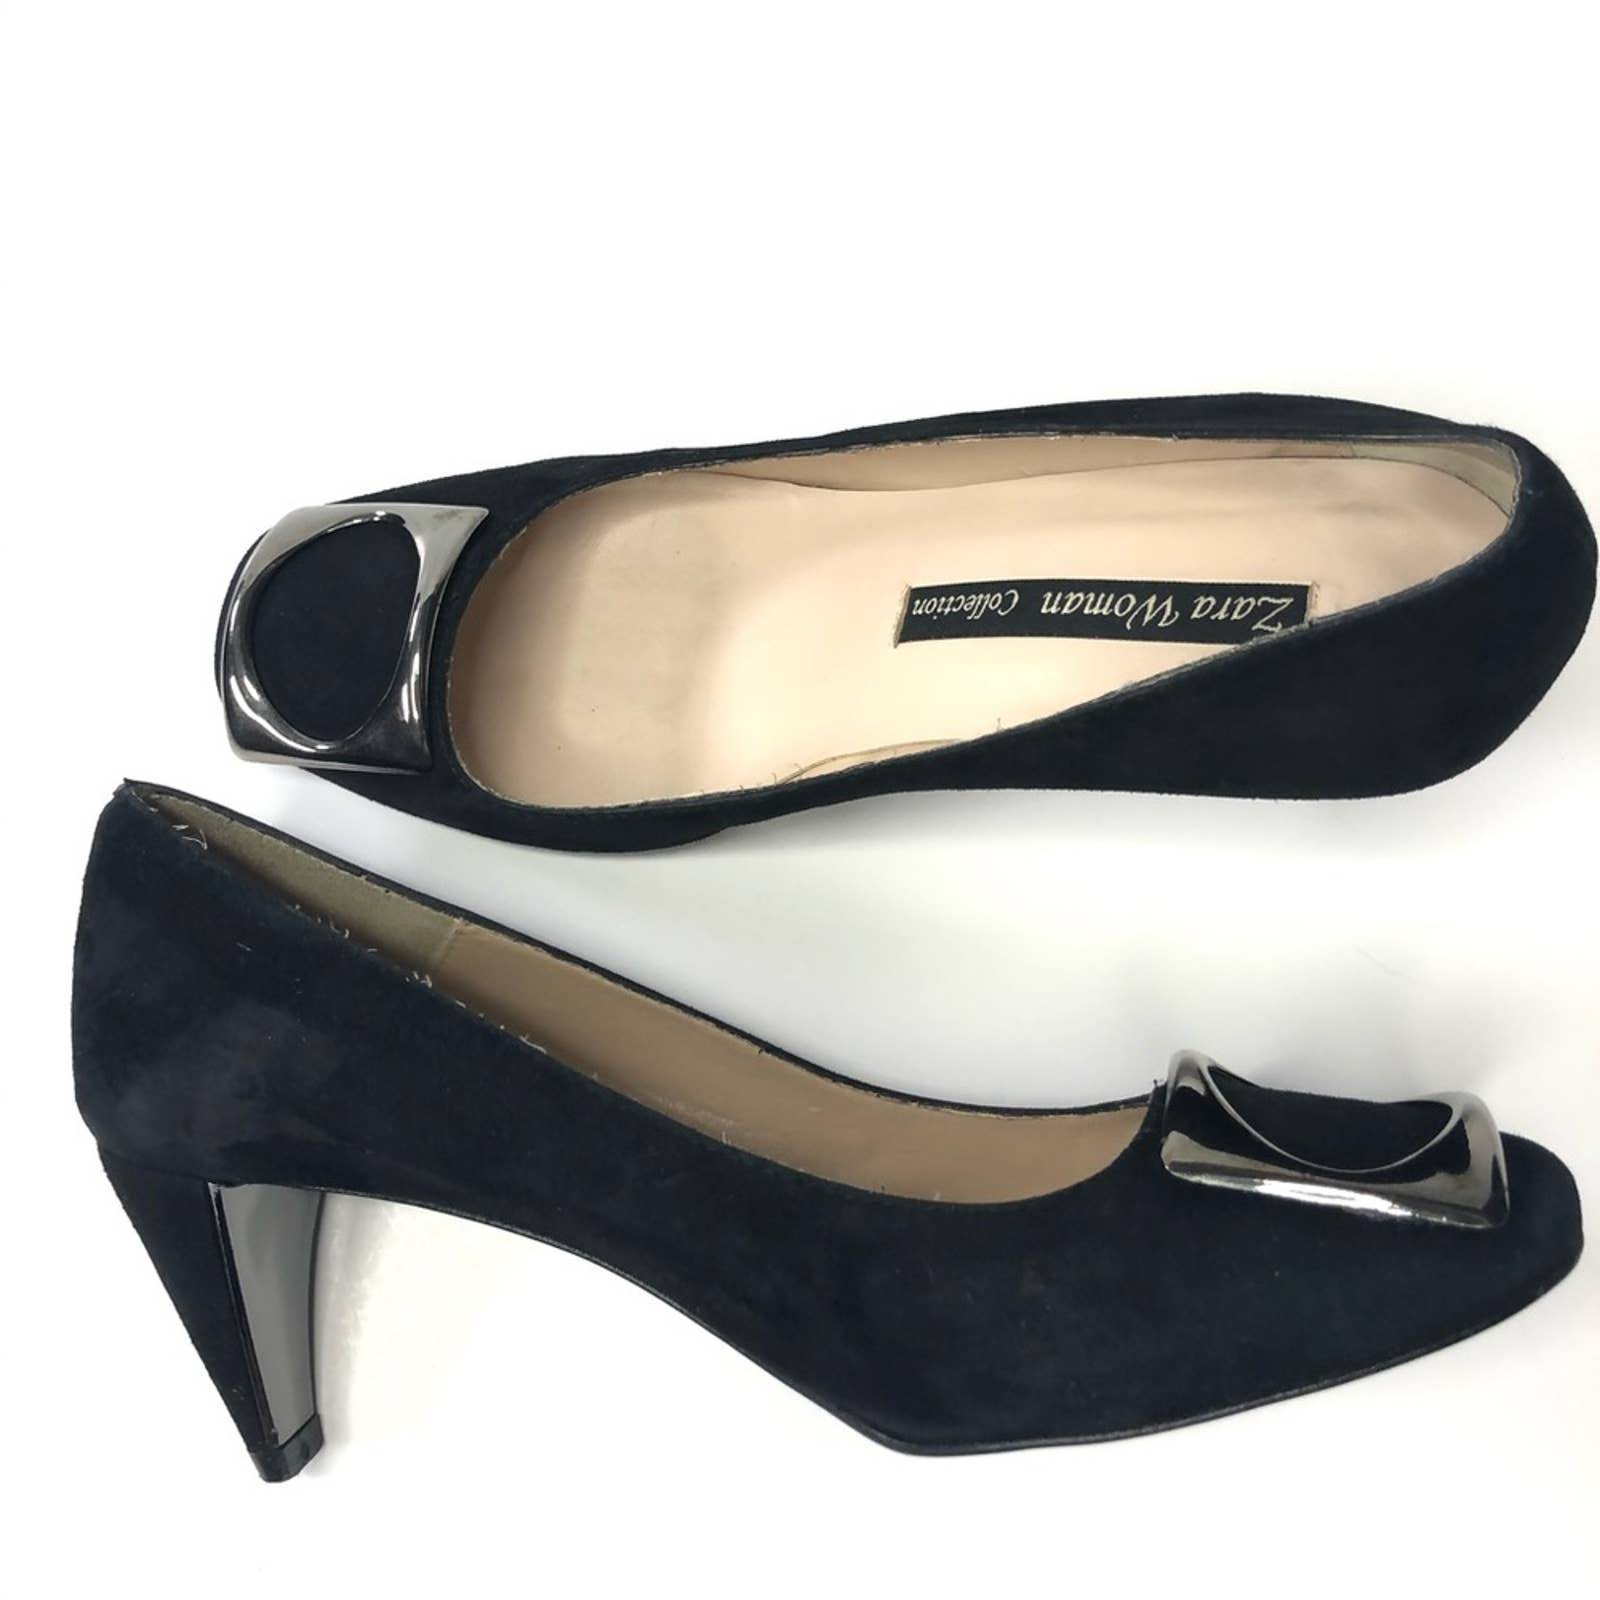 Zara Woman Collection black suede pumps